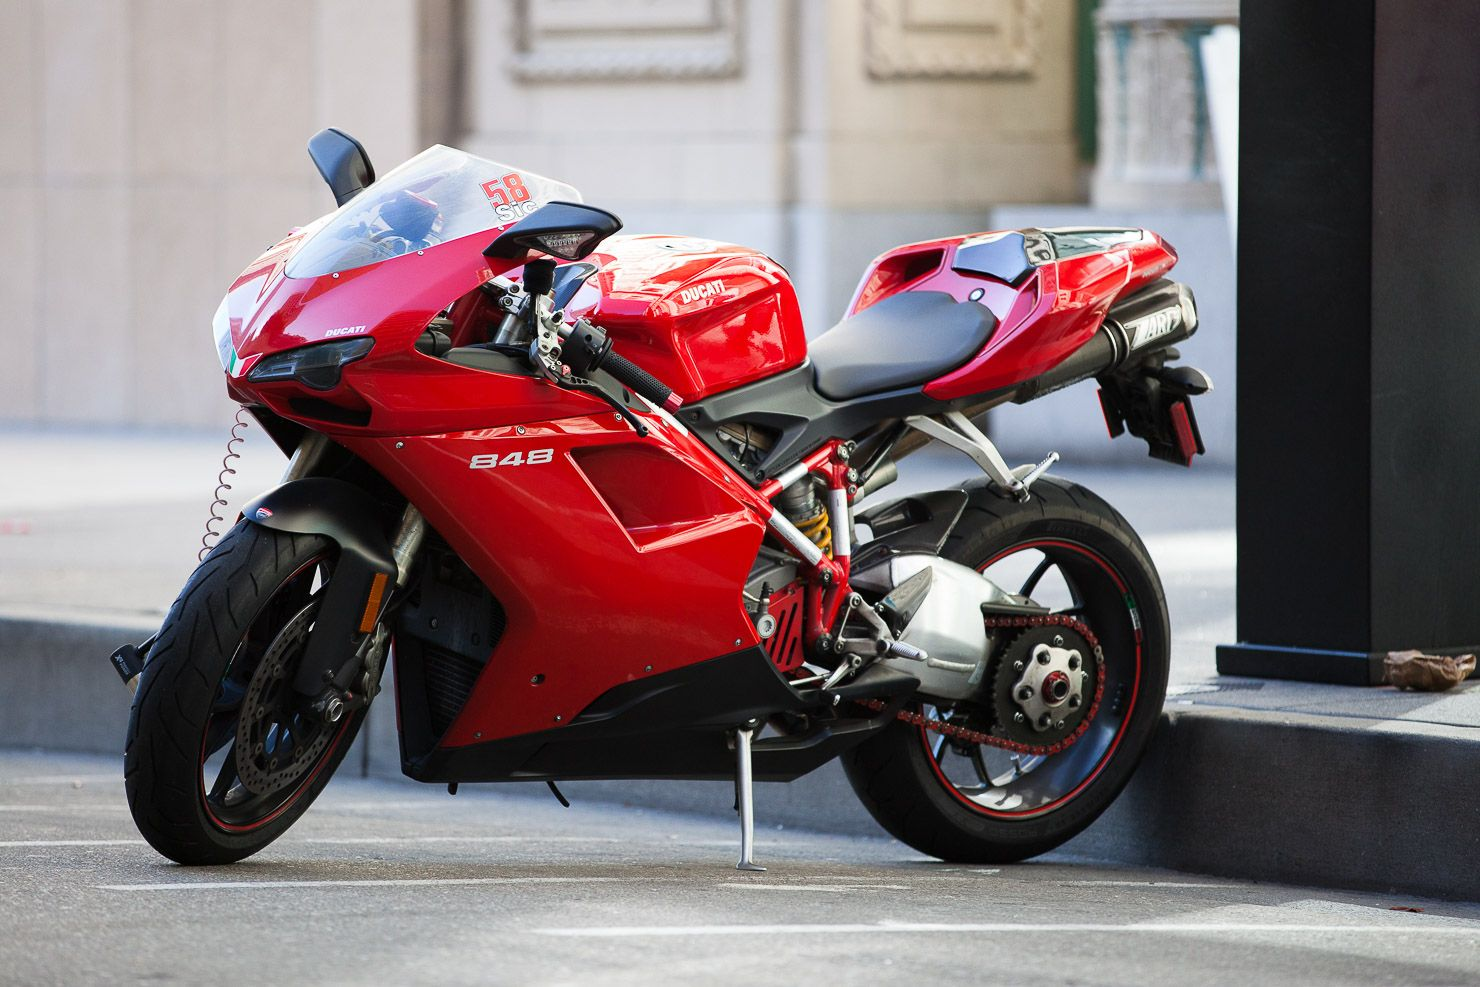 Ducati 848 With Italian Flag and 58 Sic Decals